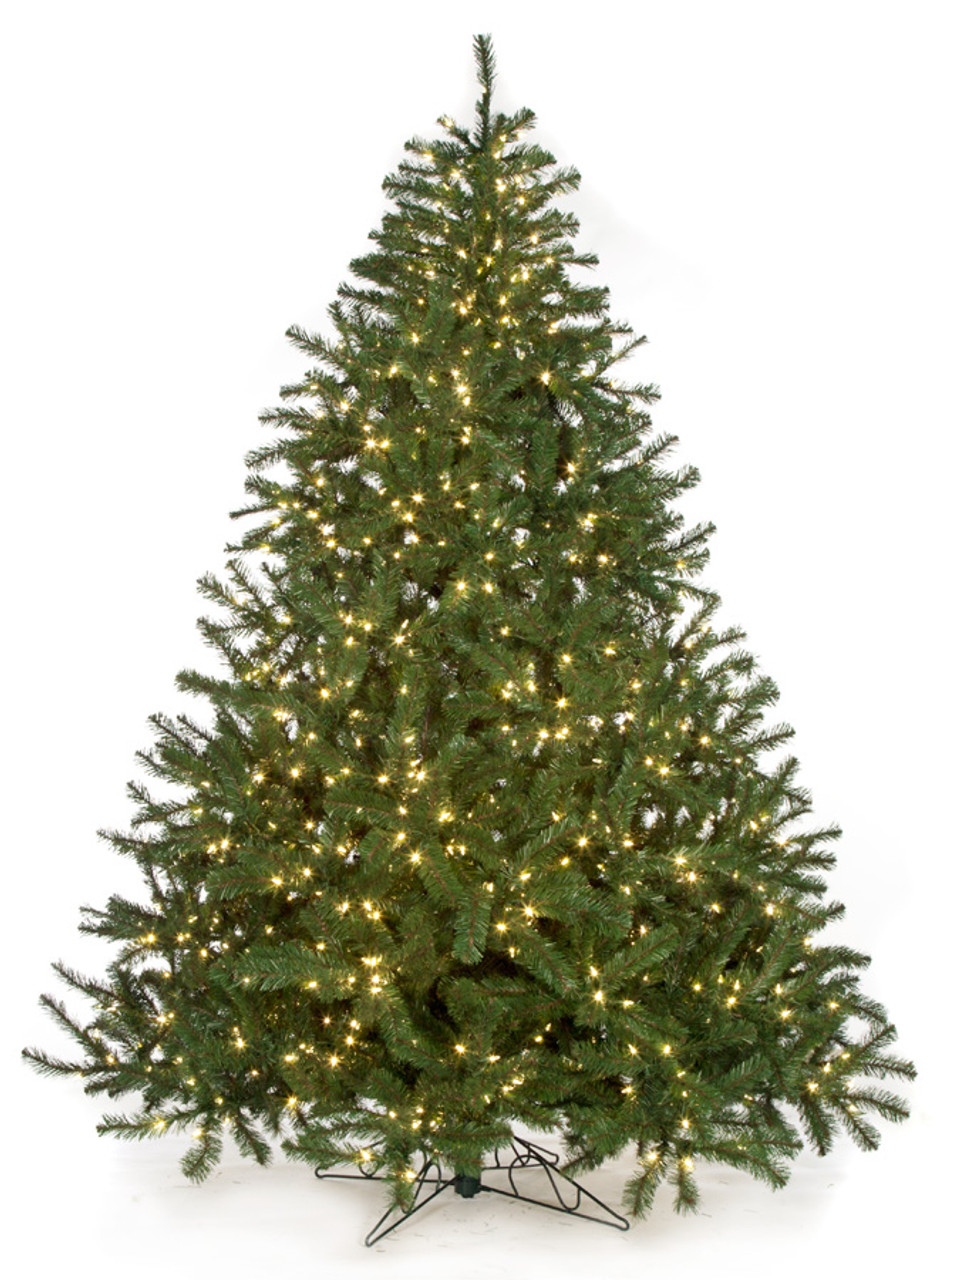 c 72004 9 virginia pine with led lights 84 width - Artificial Christmas Trees Wholesale